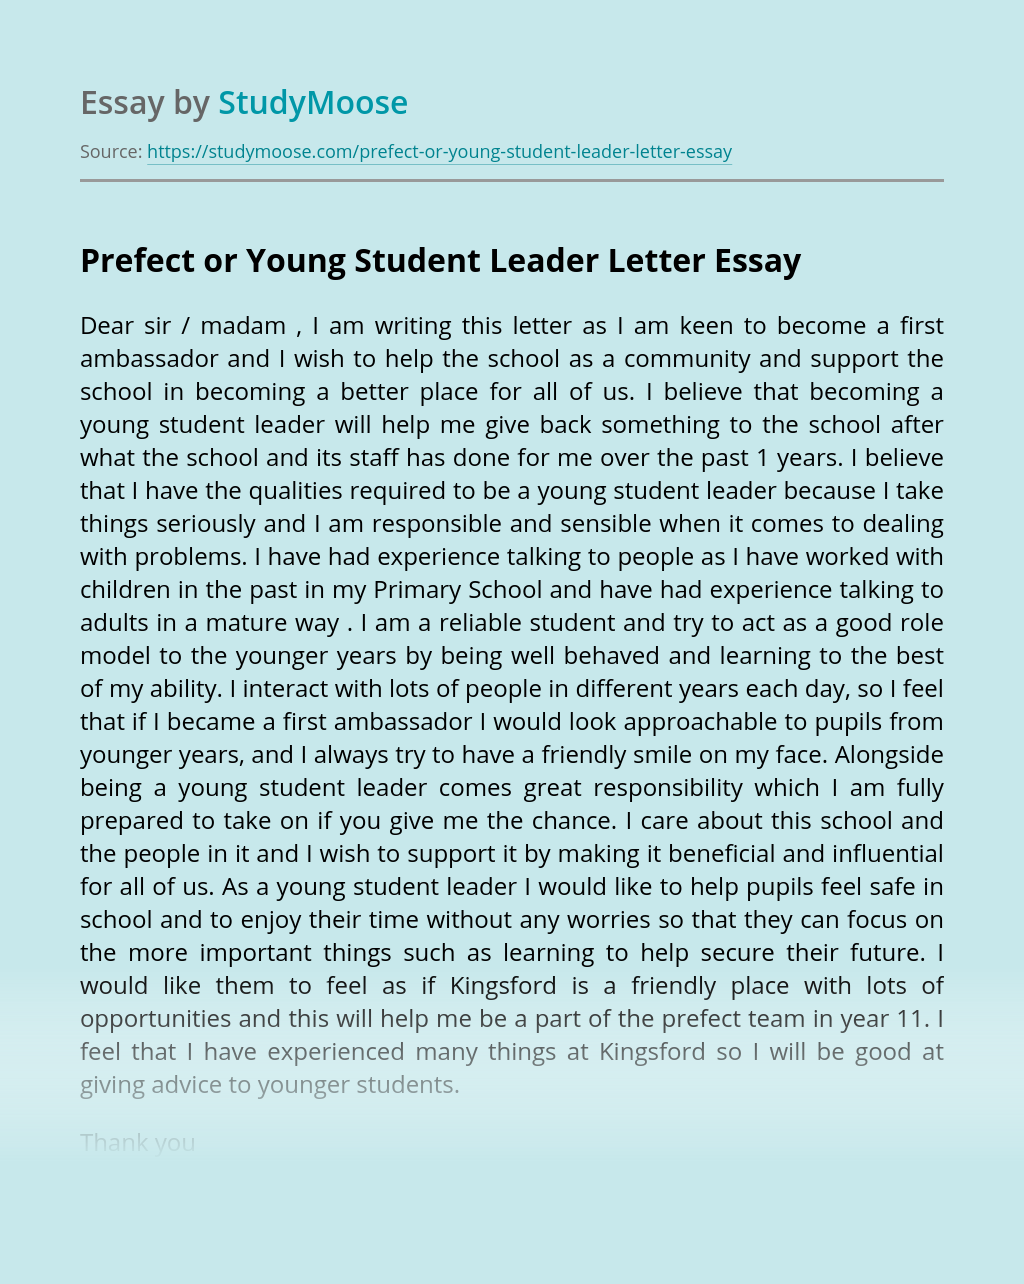 Prefect or Young Student Leader Letter